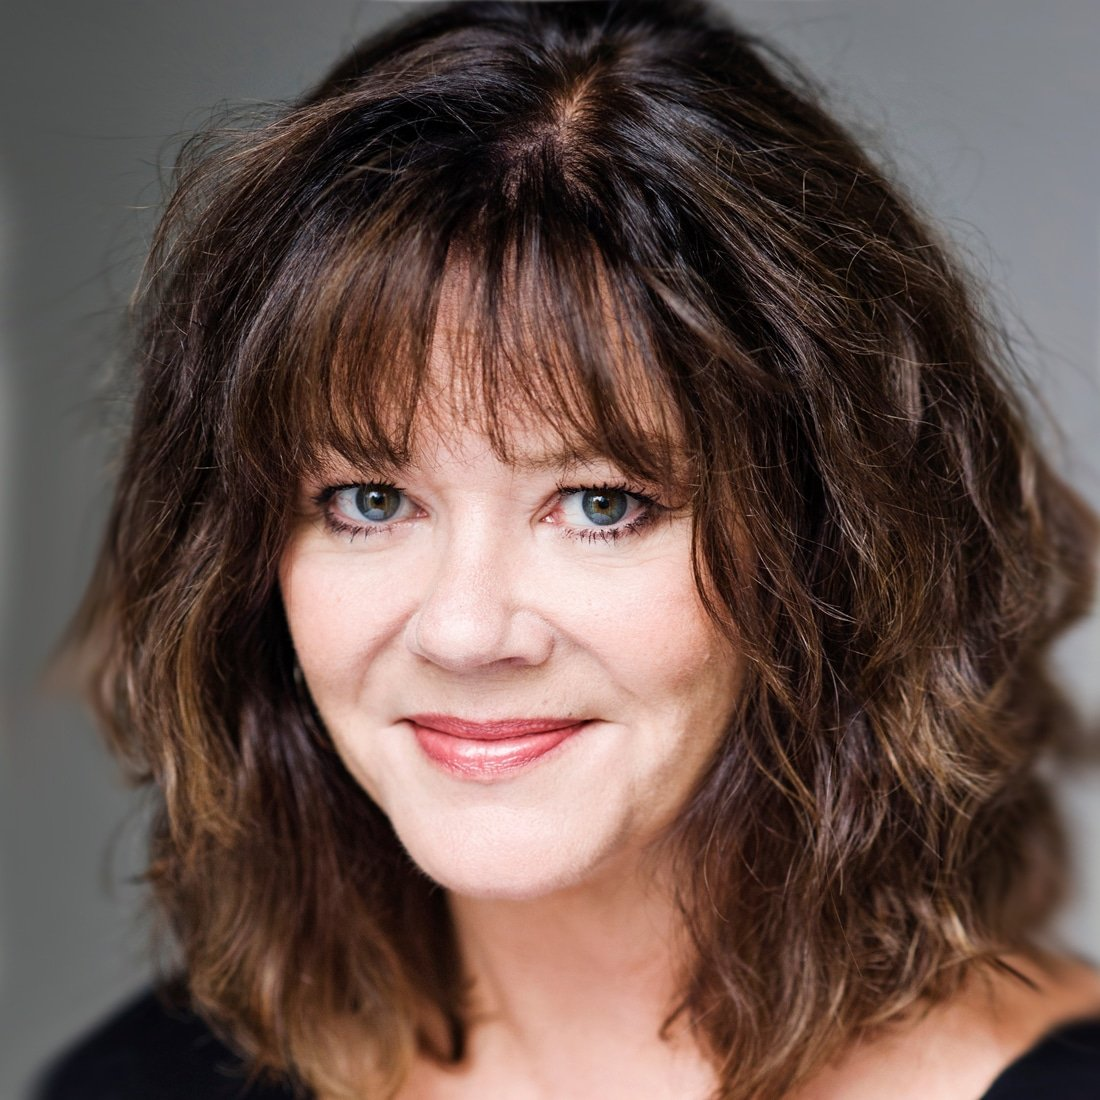 Josie-Lawrence-Actor-Comedian-Host-Entertainer-at-Great-British-Speakers